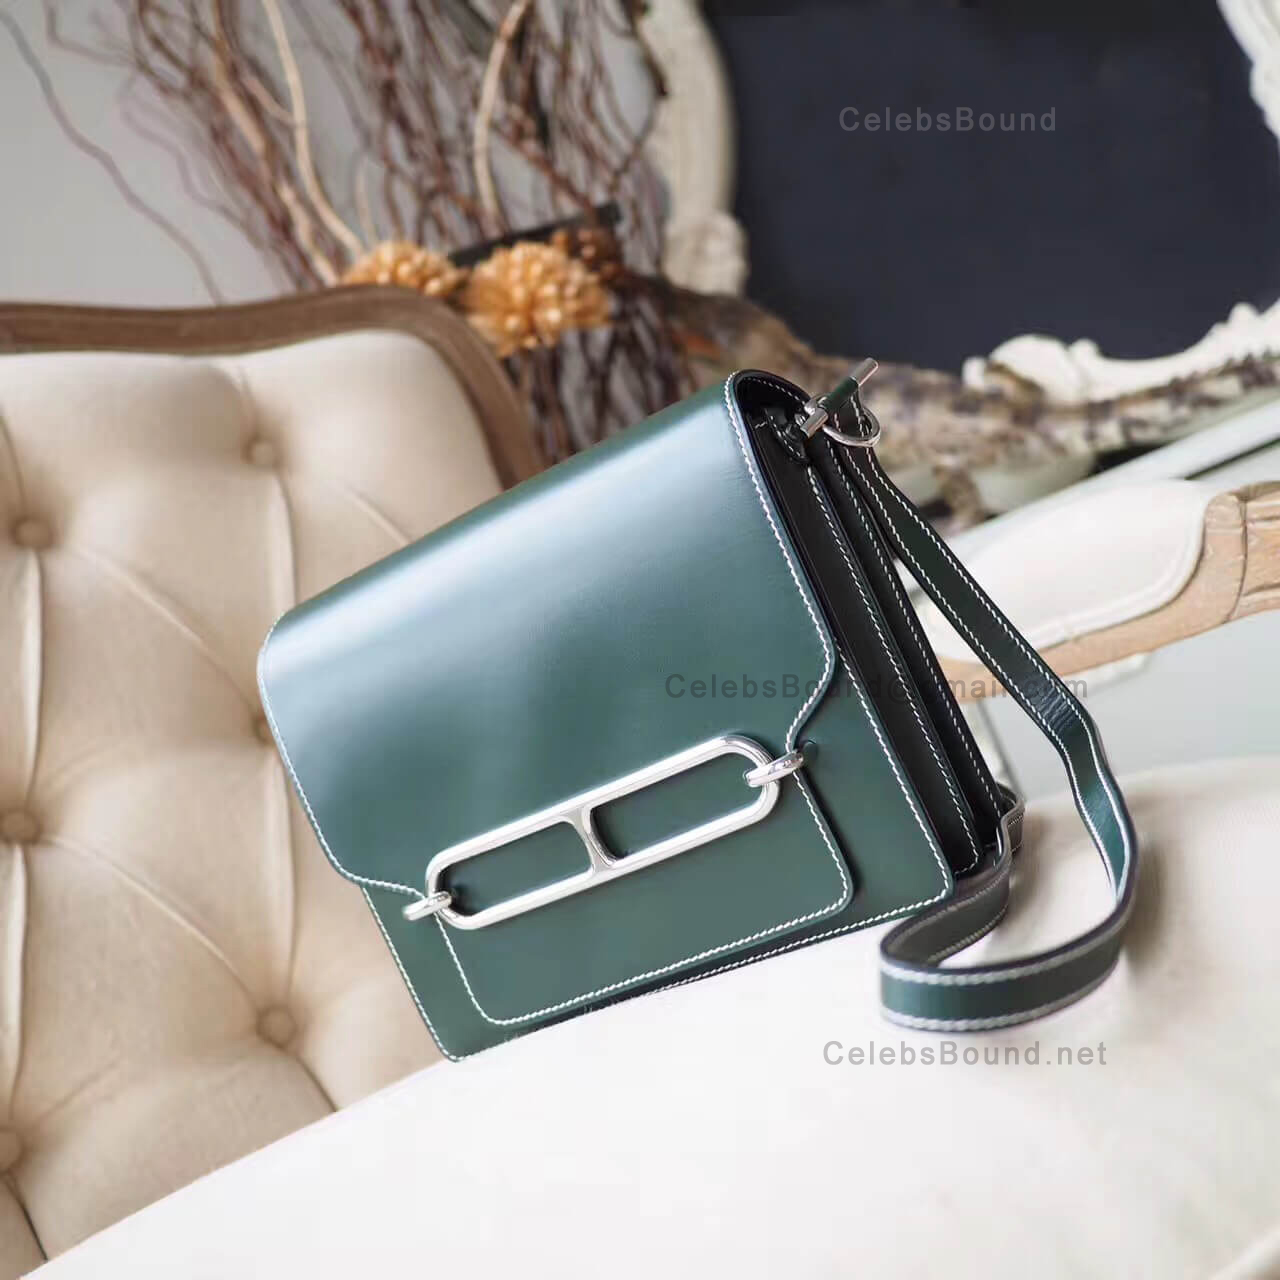 Replica Hermes Roulis 23 Bag in 2q Vert Anglais Box PHW